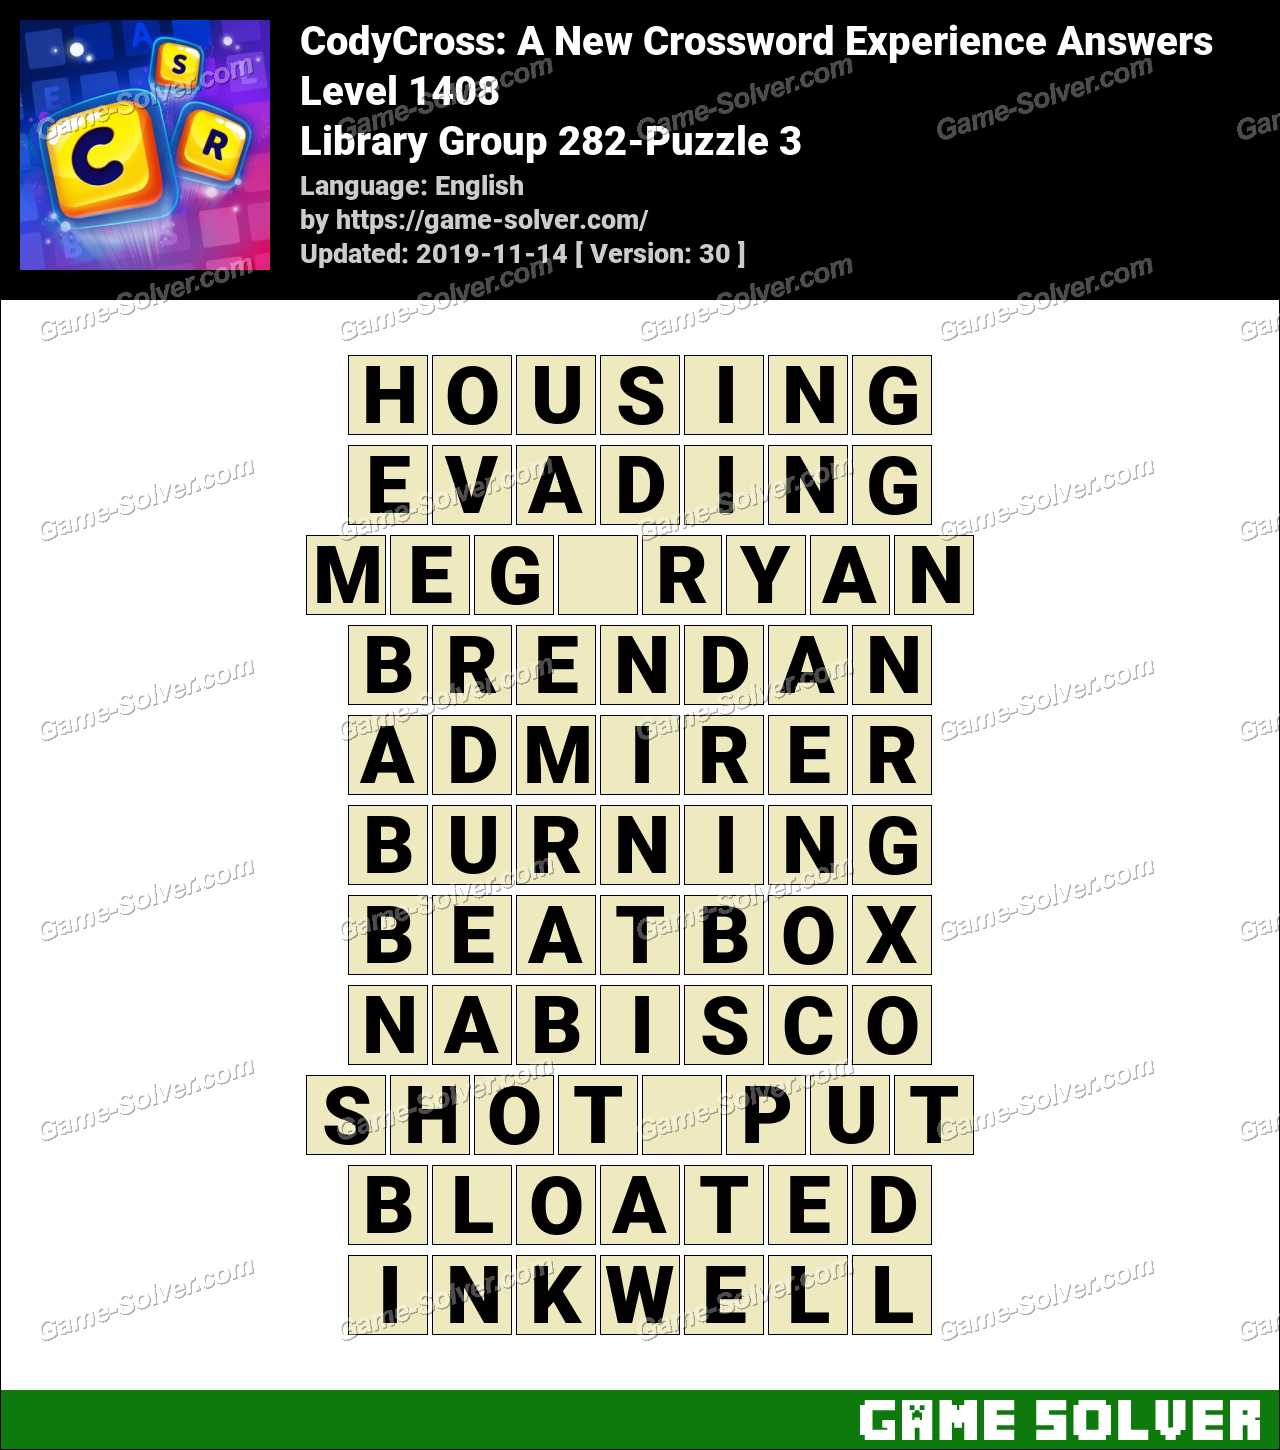 CodyCross Library Group 282-Puzzle 3 Answers